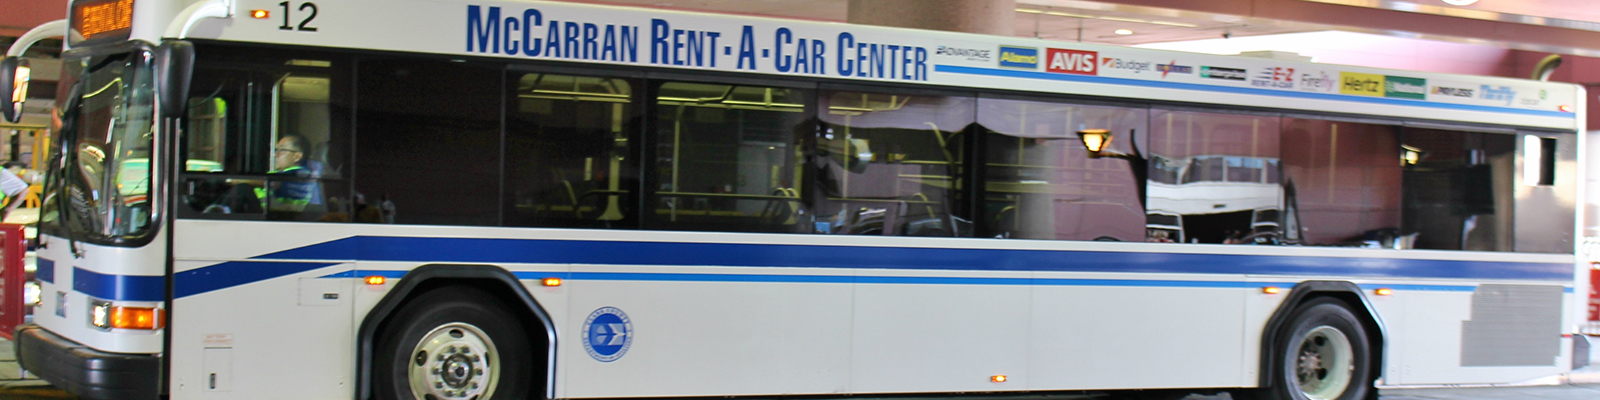 Transportation Services at McCarran